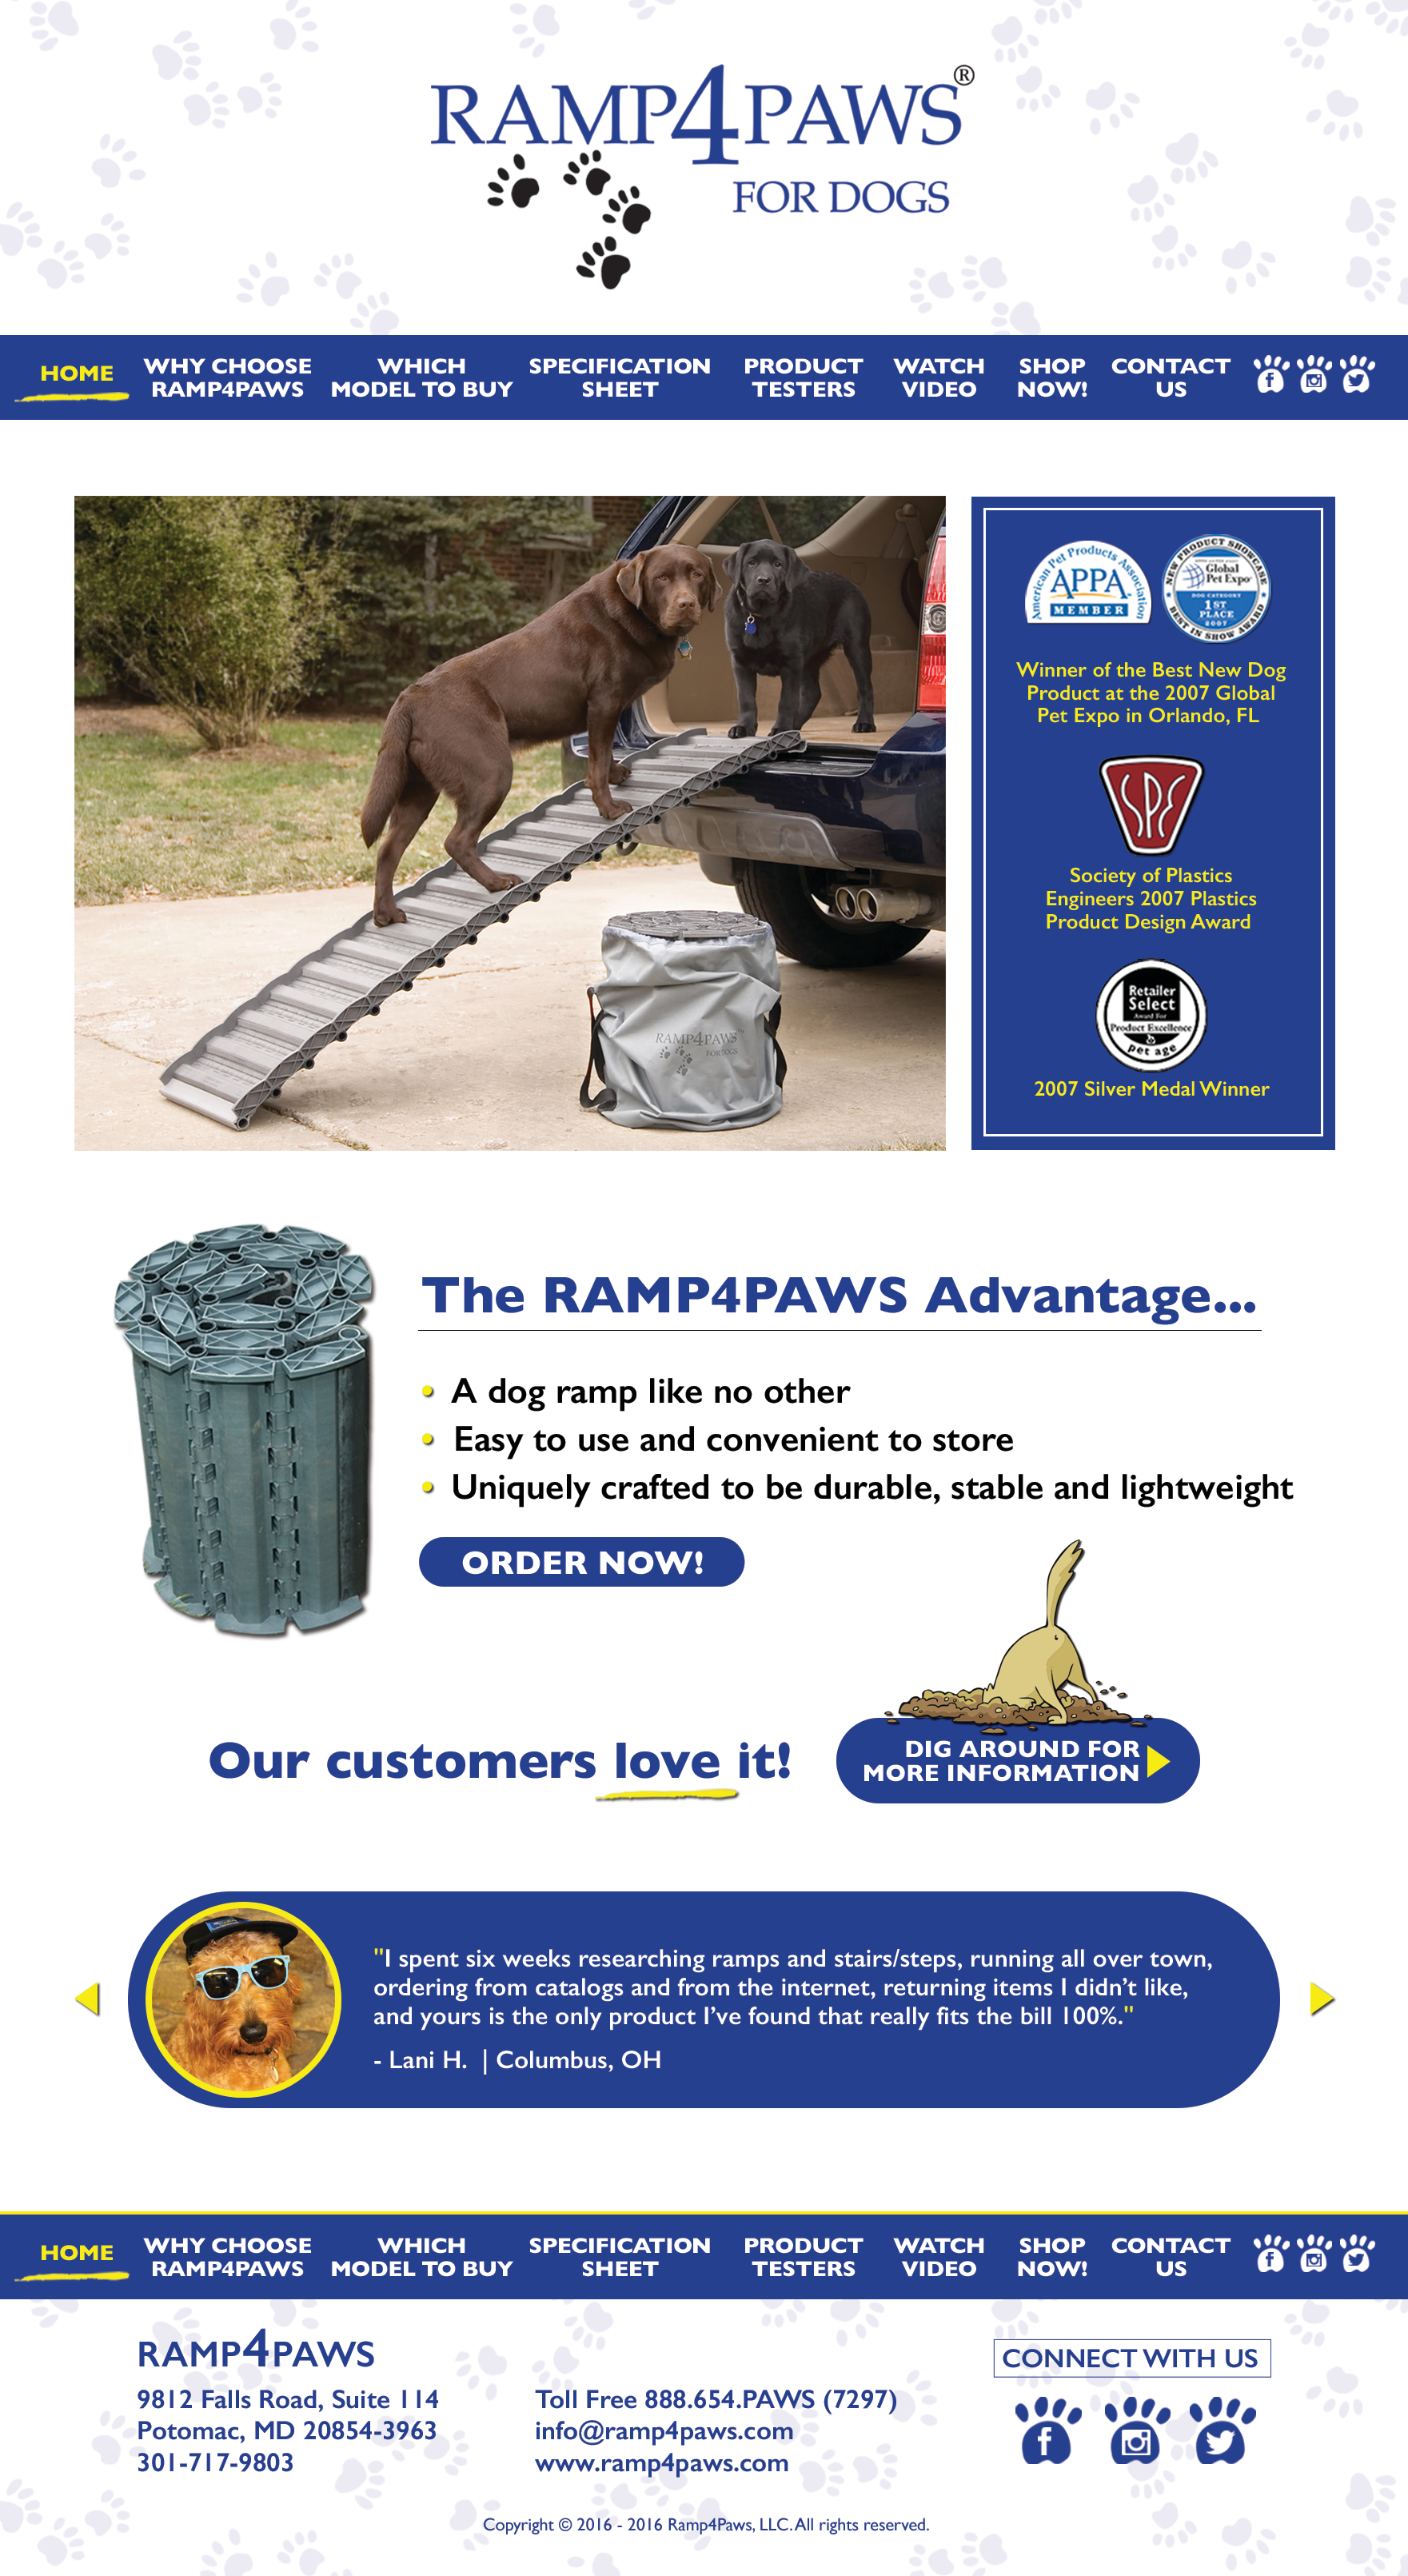 Ramp4Paws for Dogs